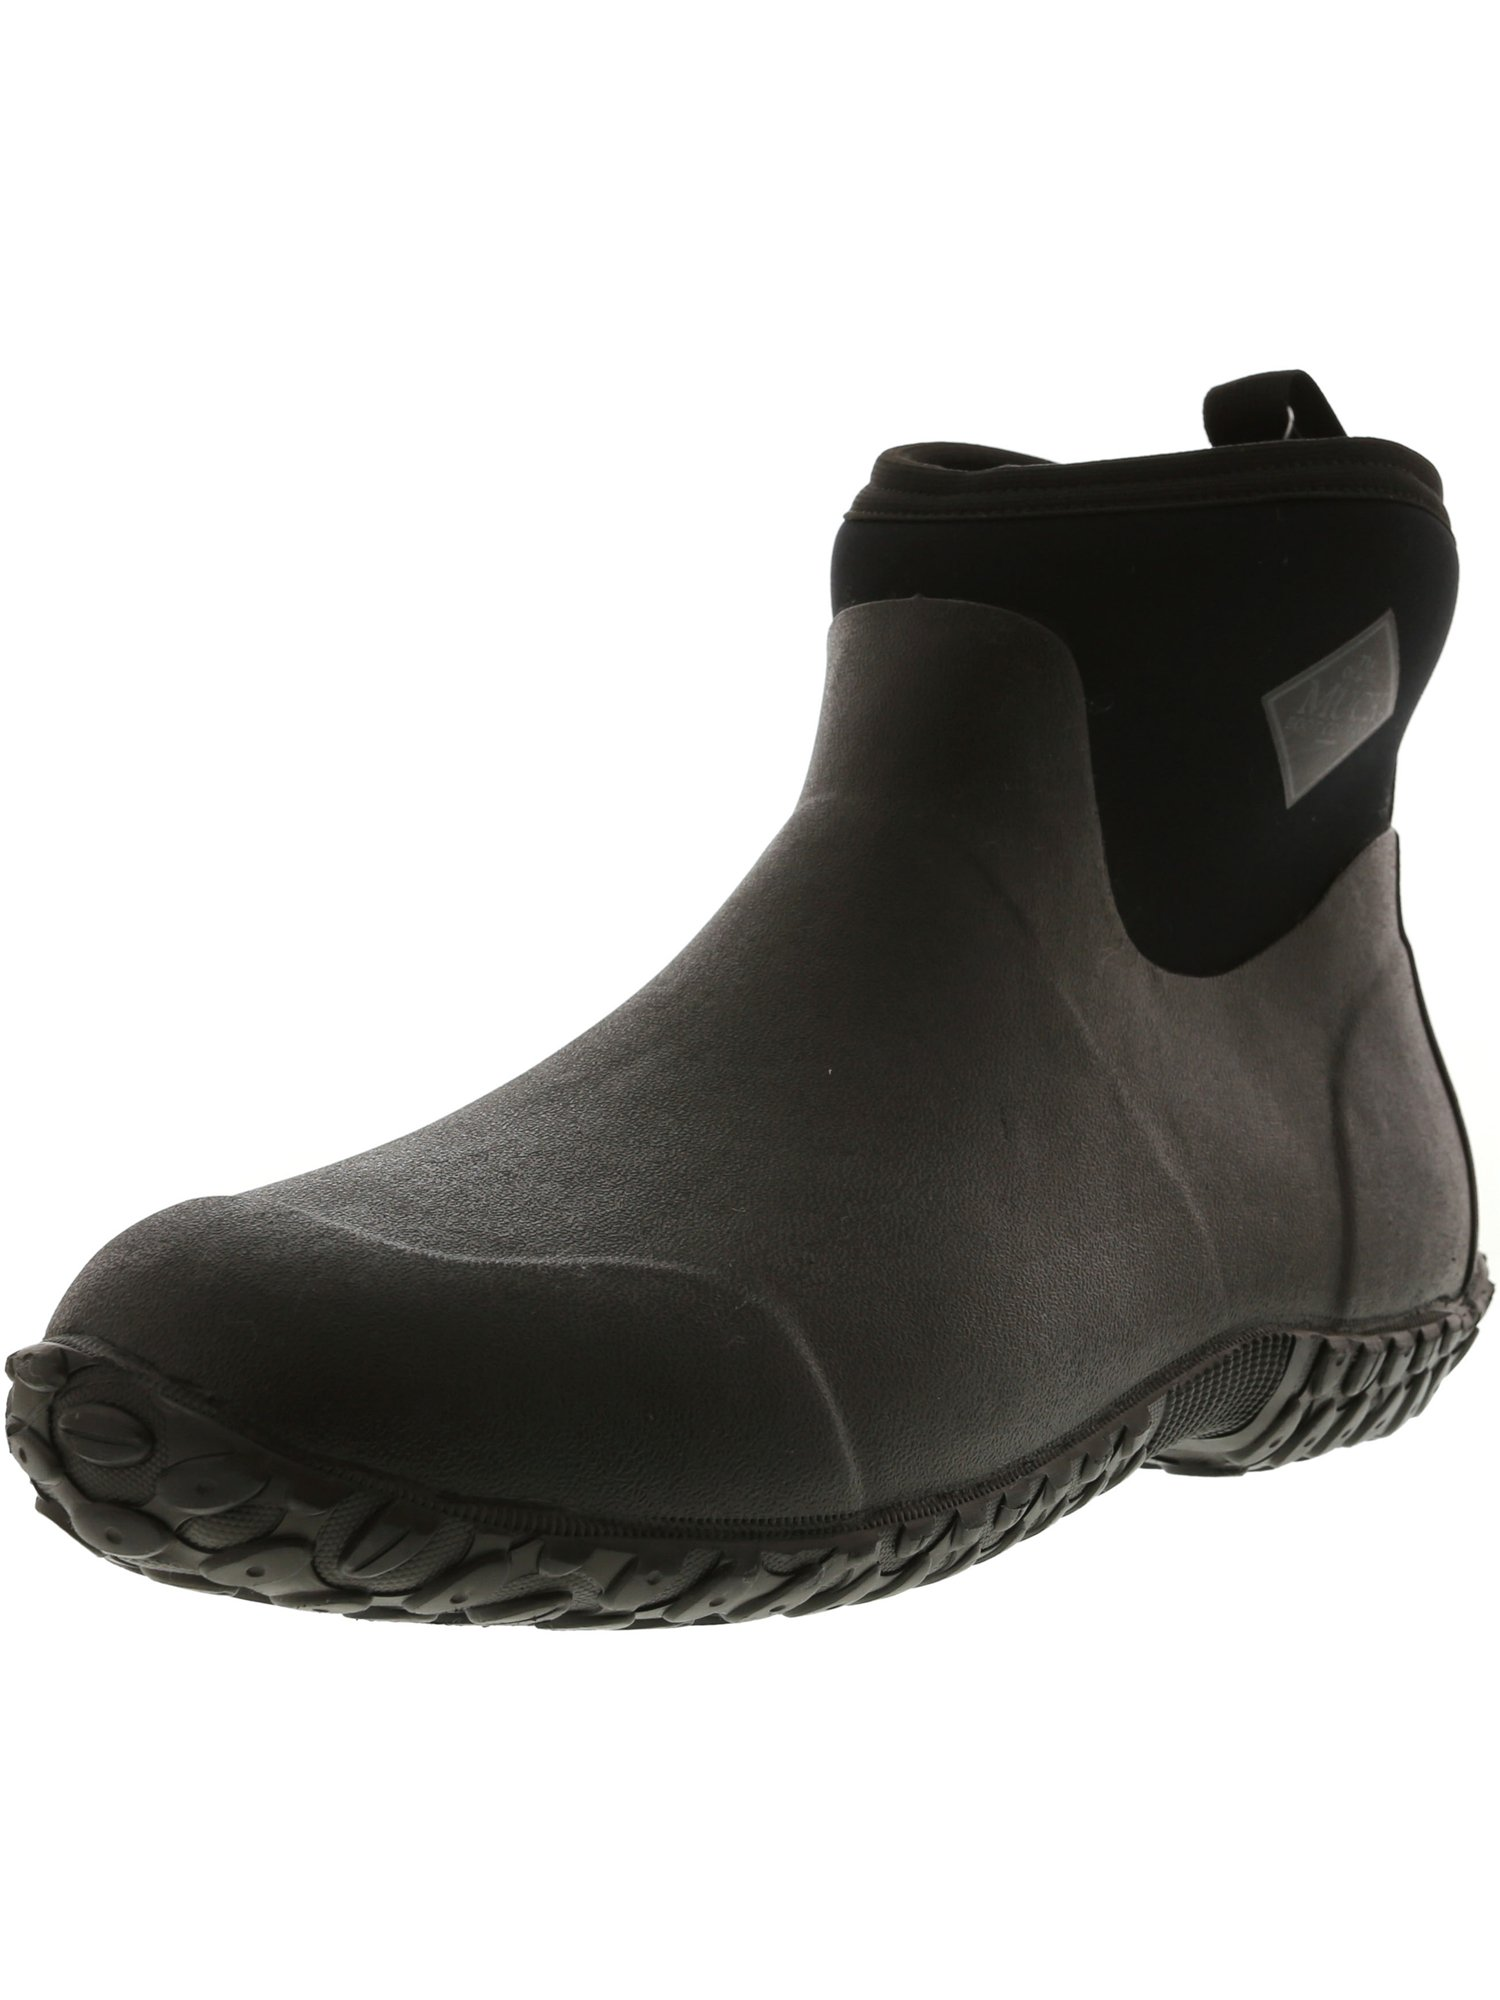 0ea4f44a790 Muck Boot Company Men's Muckster Ii Ankle Black / Ankle-High Rubber Rain -  9M